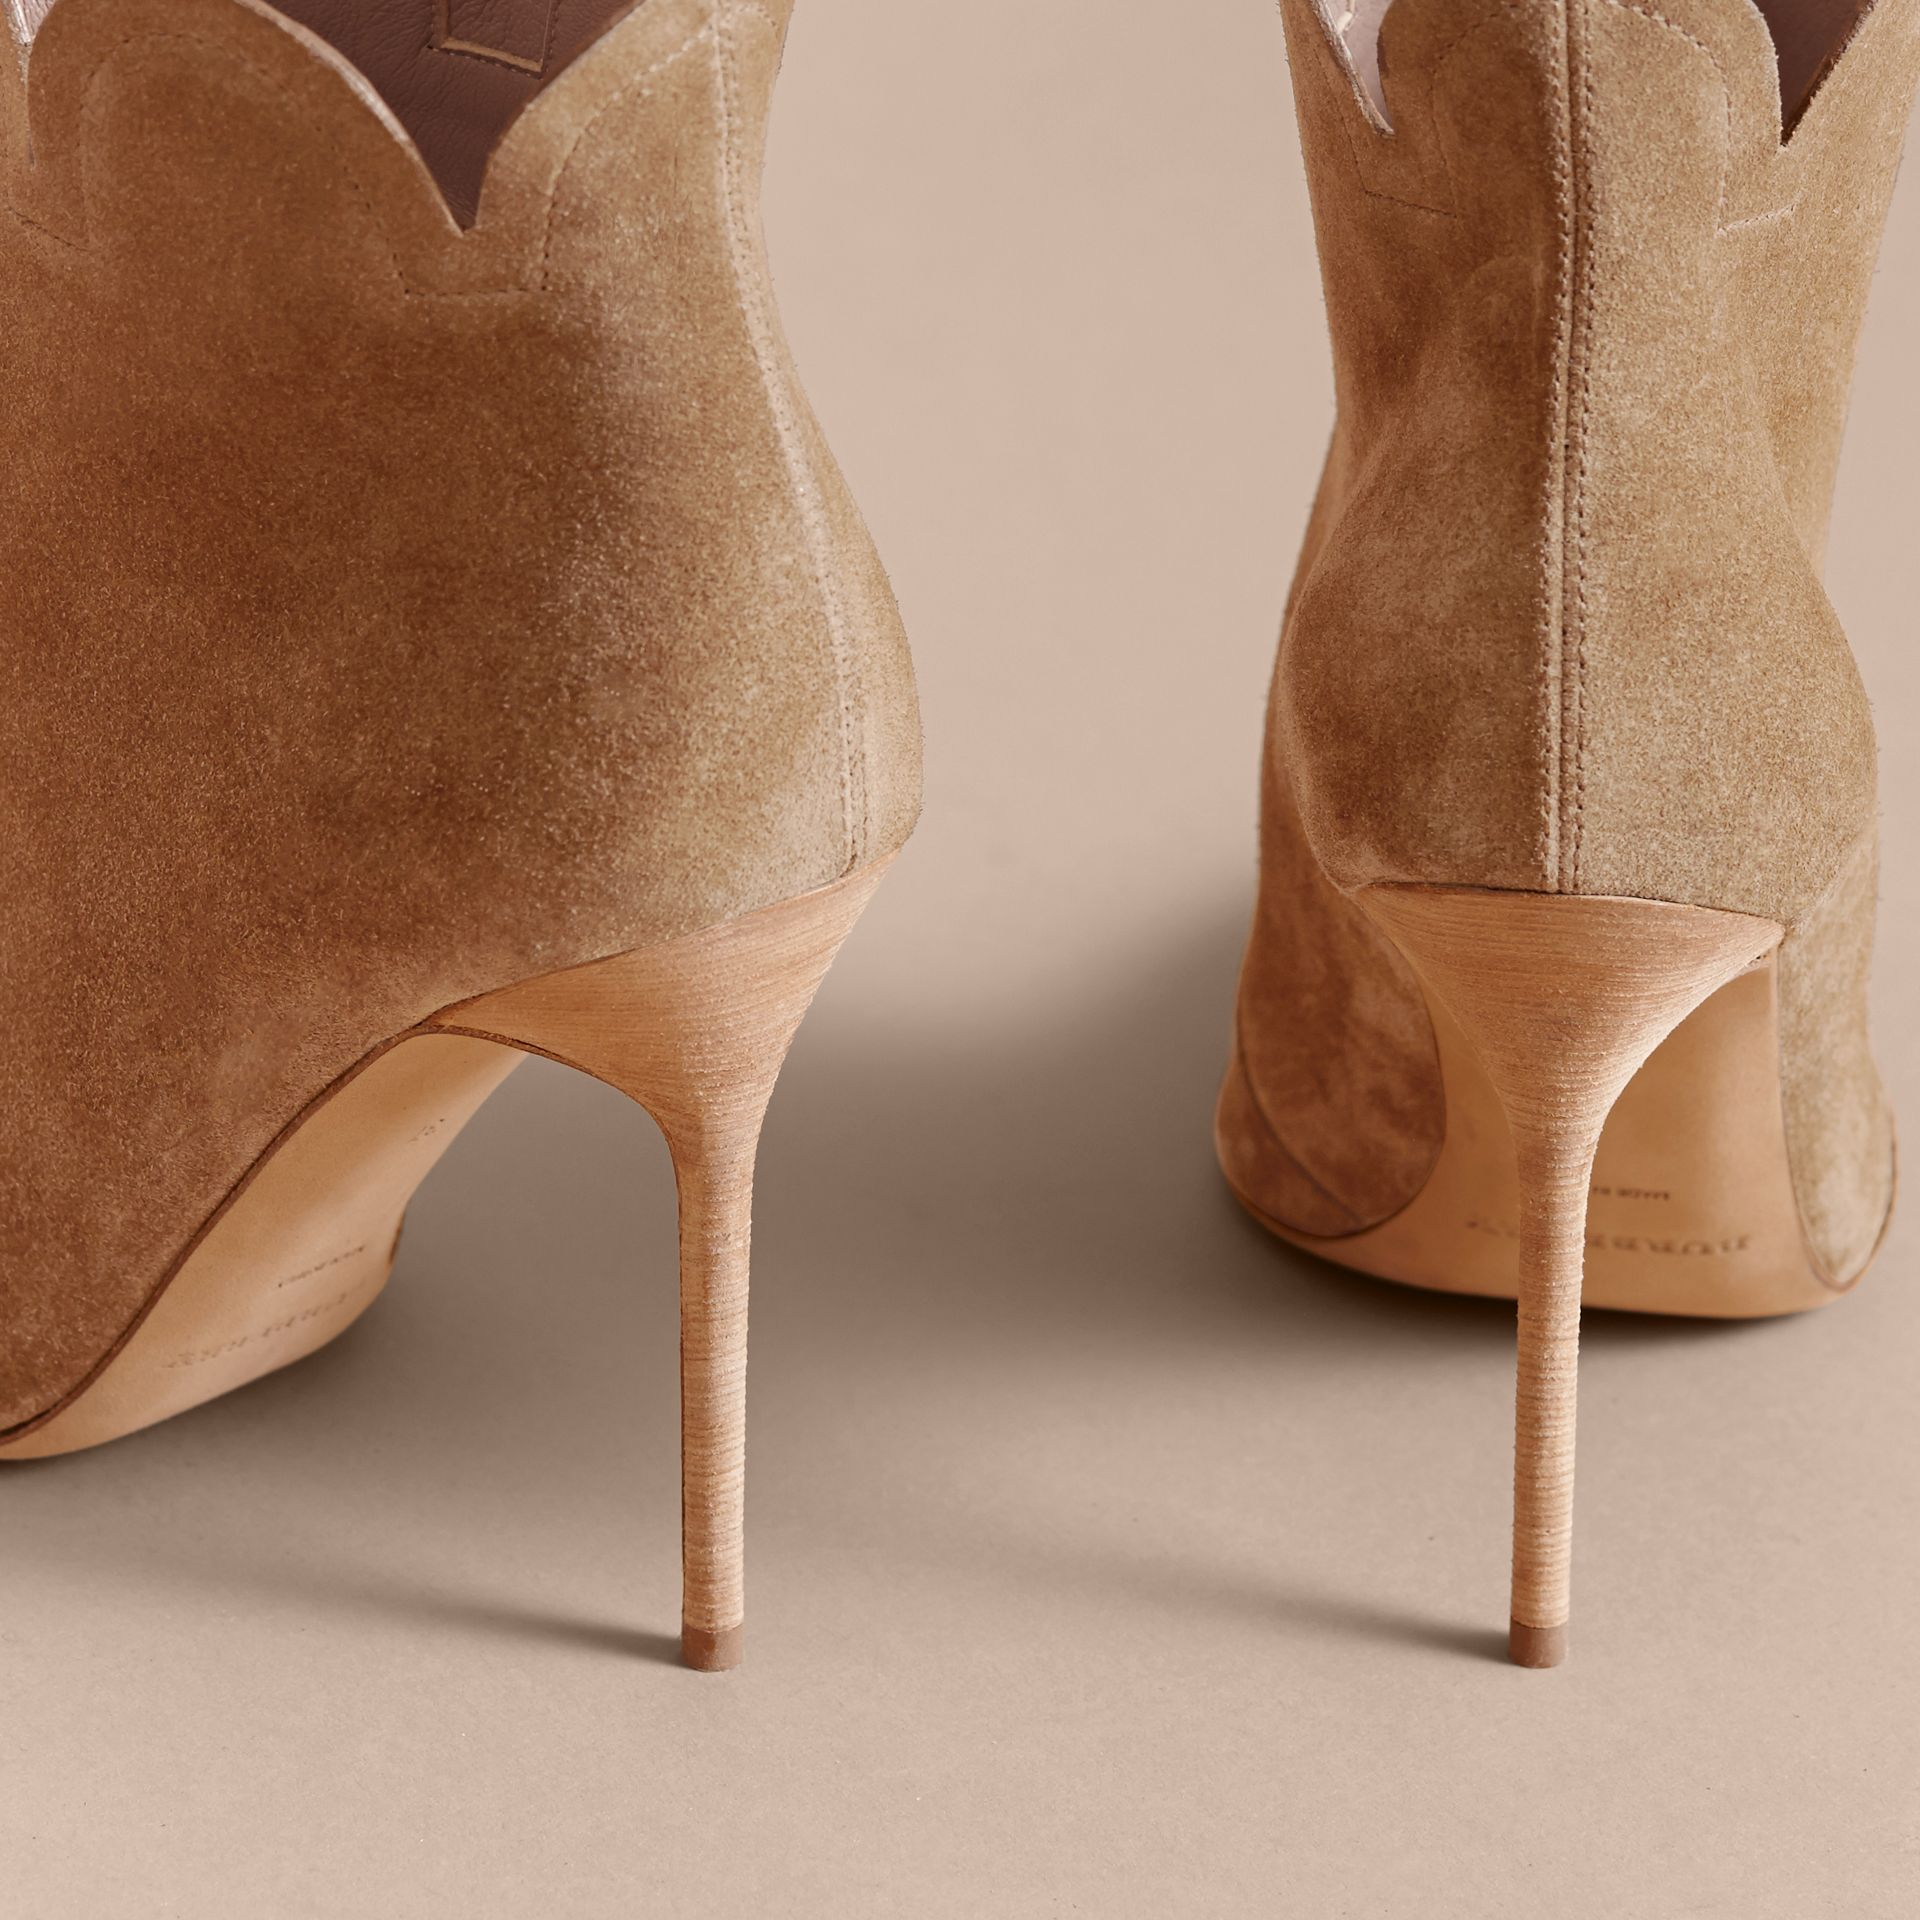 Scalloped Suede Ankle Boots in Sandstone - Women | Burberry Hong Kong - gallery image 4